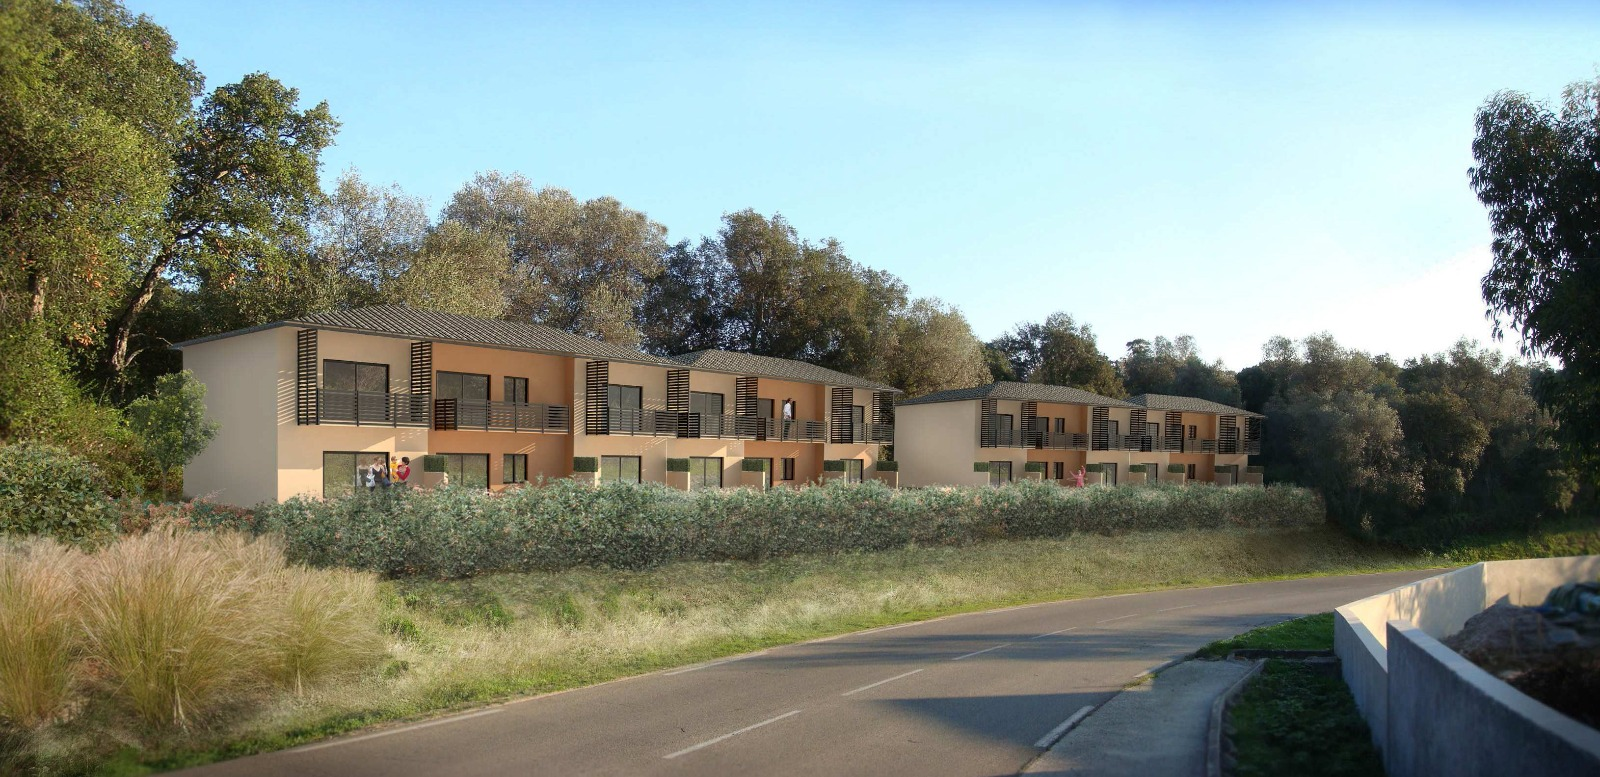 T3 residence a nepita lpt immobilier for Residence immobilier